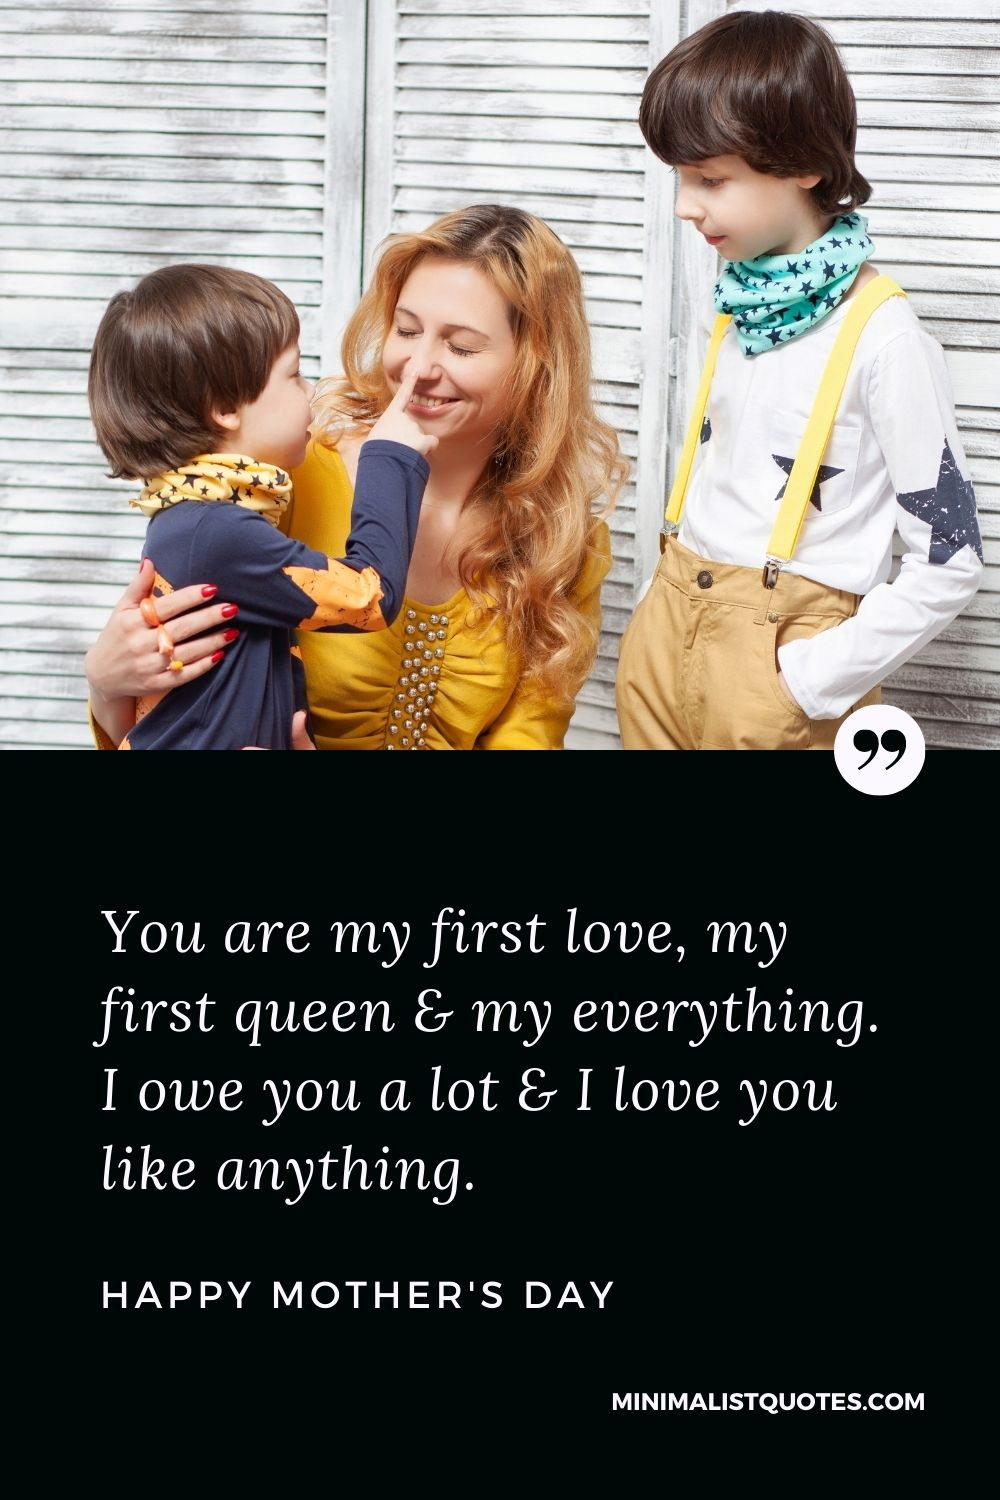 Mother's day wish, message & quote with HD image: You are my first love, my first queen & my everything. I owe you a lot & I love you like anything. Happy Mother's Day!